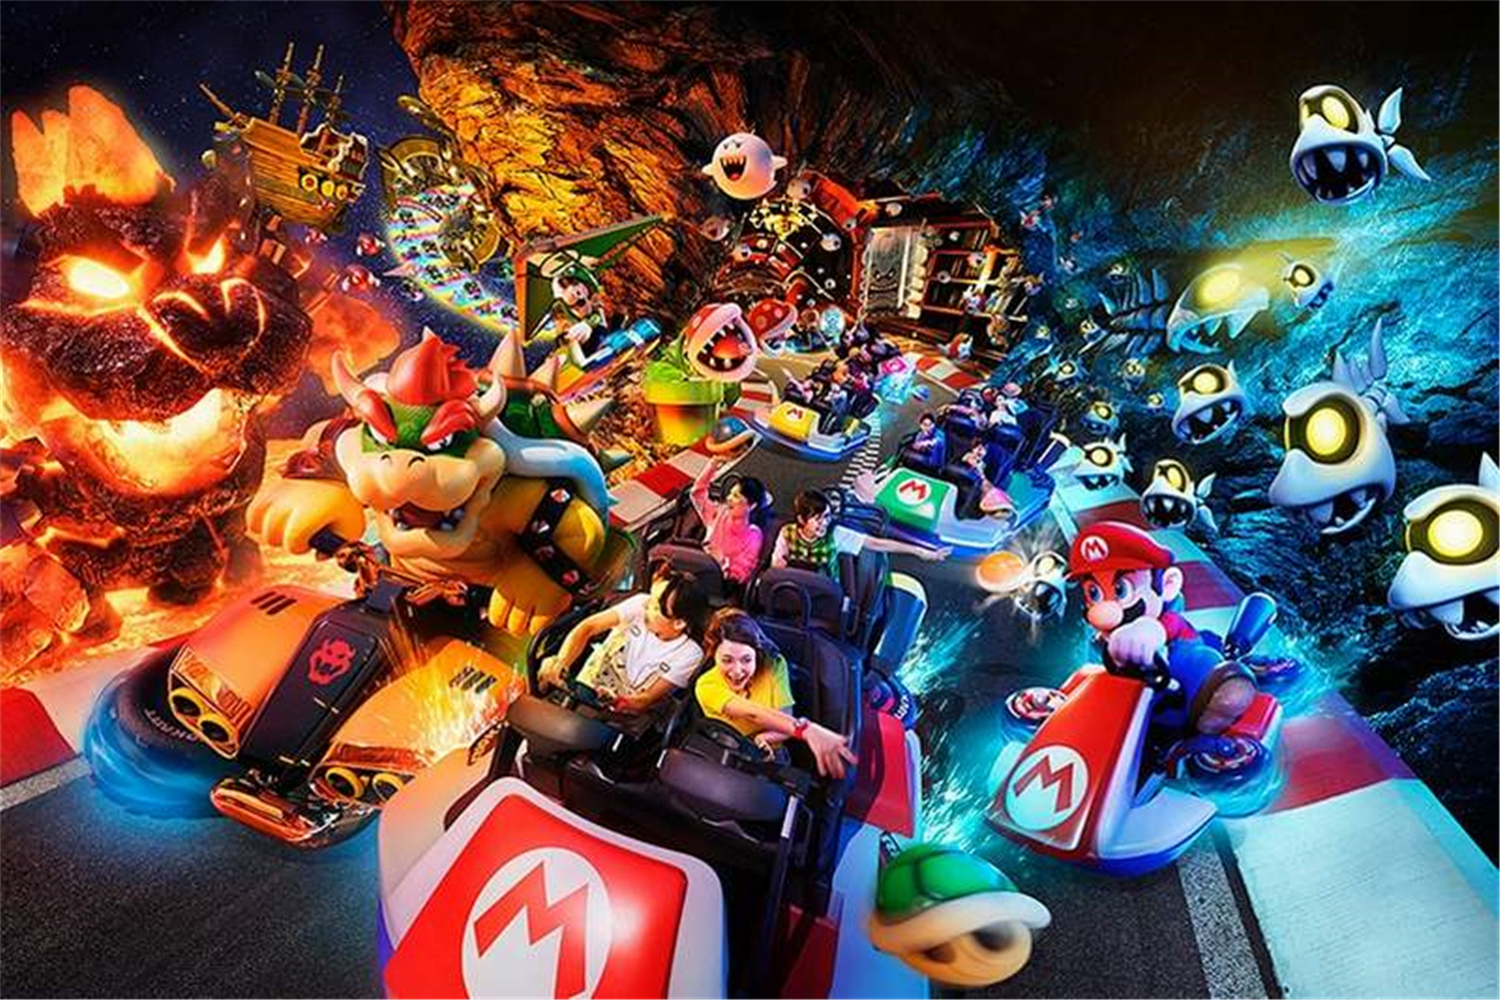 Nintendo Theme Park To Open In February And Will Have Mario Kart Ride